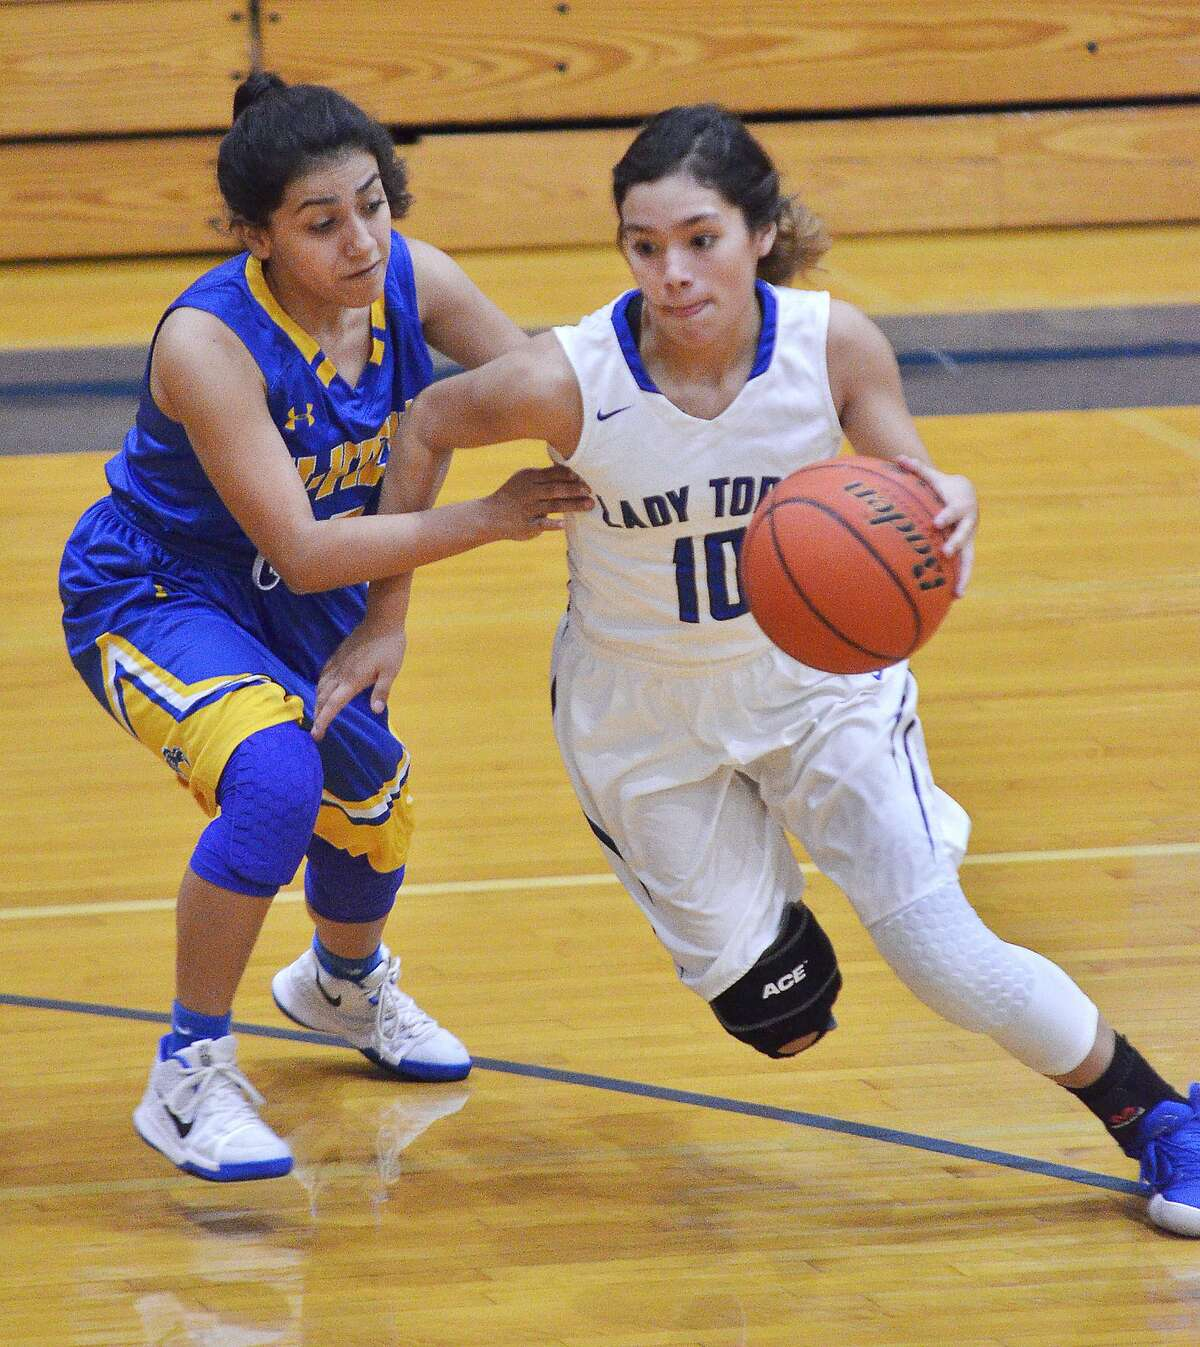 Larizza Cantu and Cigarroa went 2-0 during Day 2 of a tournament in La Joya. Cantu scored 15 points in each of the Lady Toros' games.